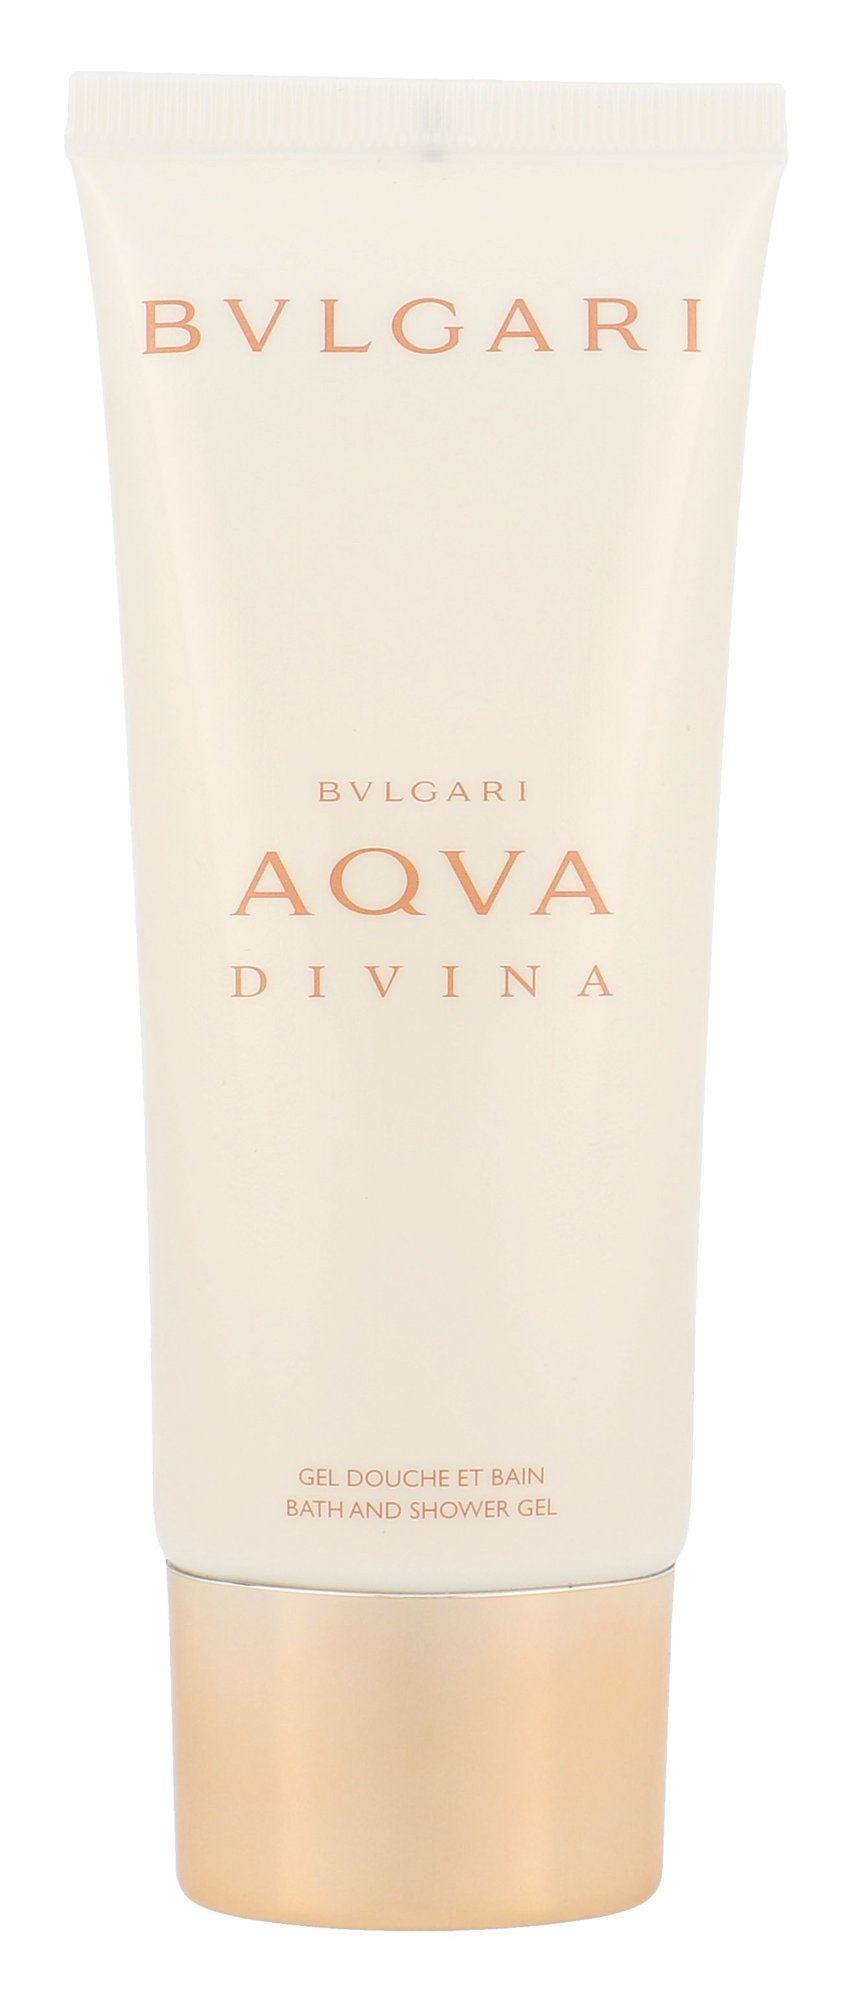 Bvlgari Aqva Divina Shower gel 100ml